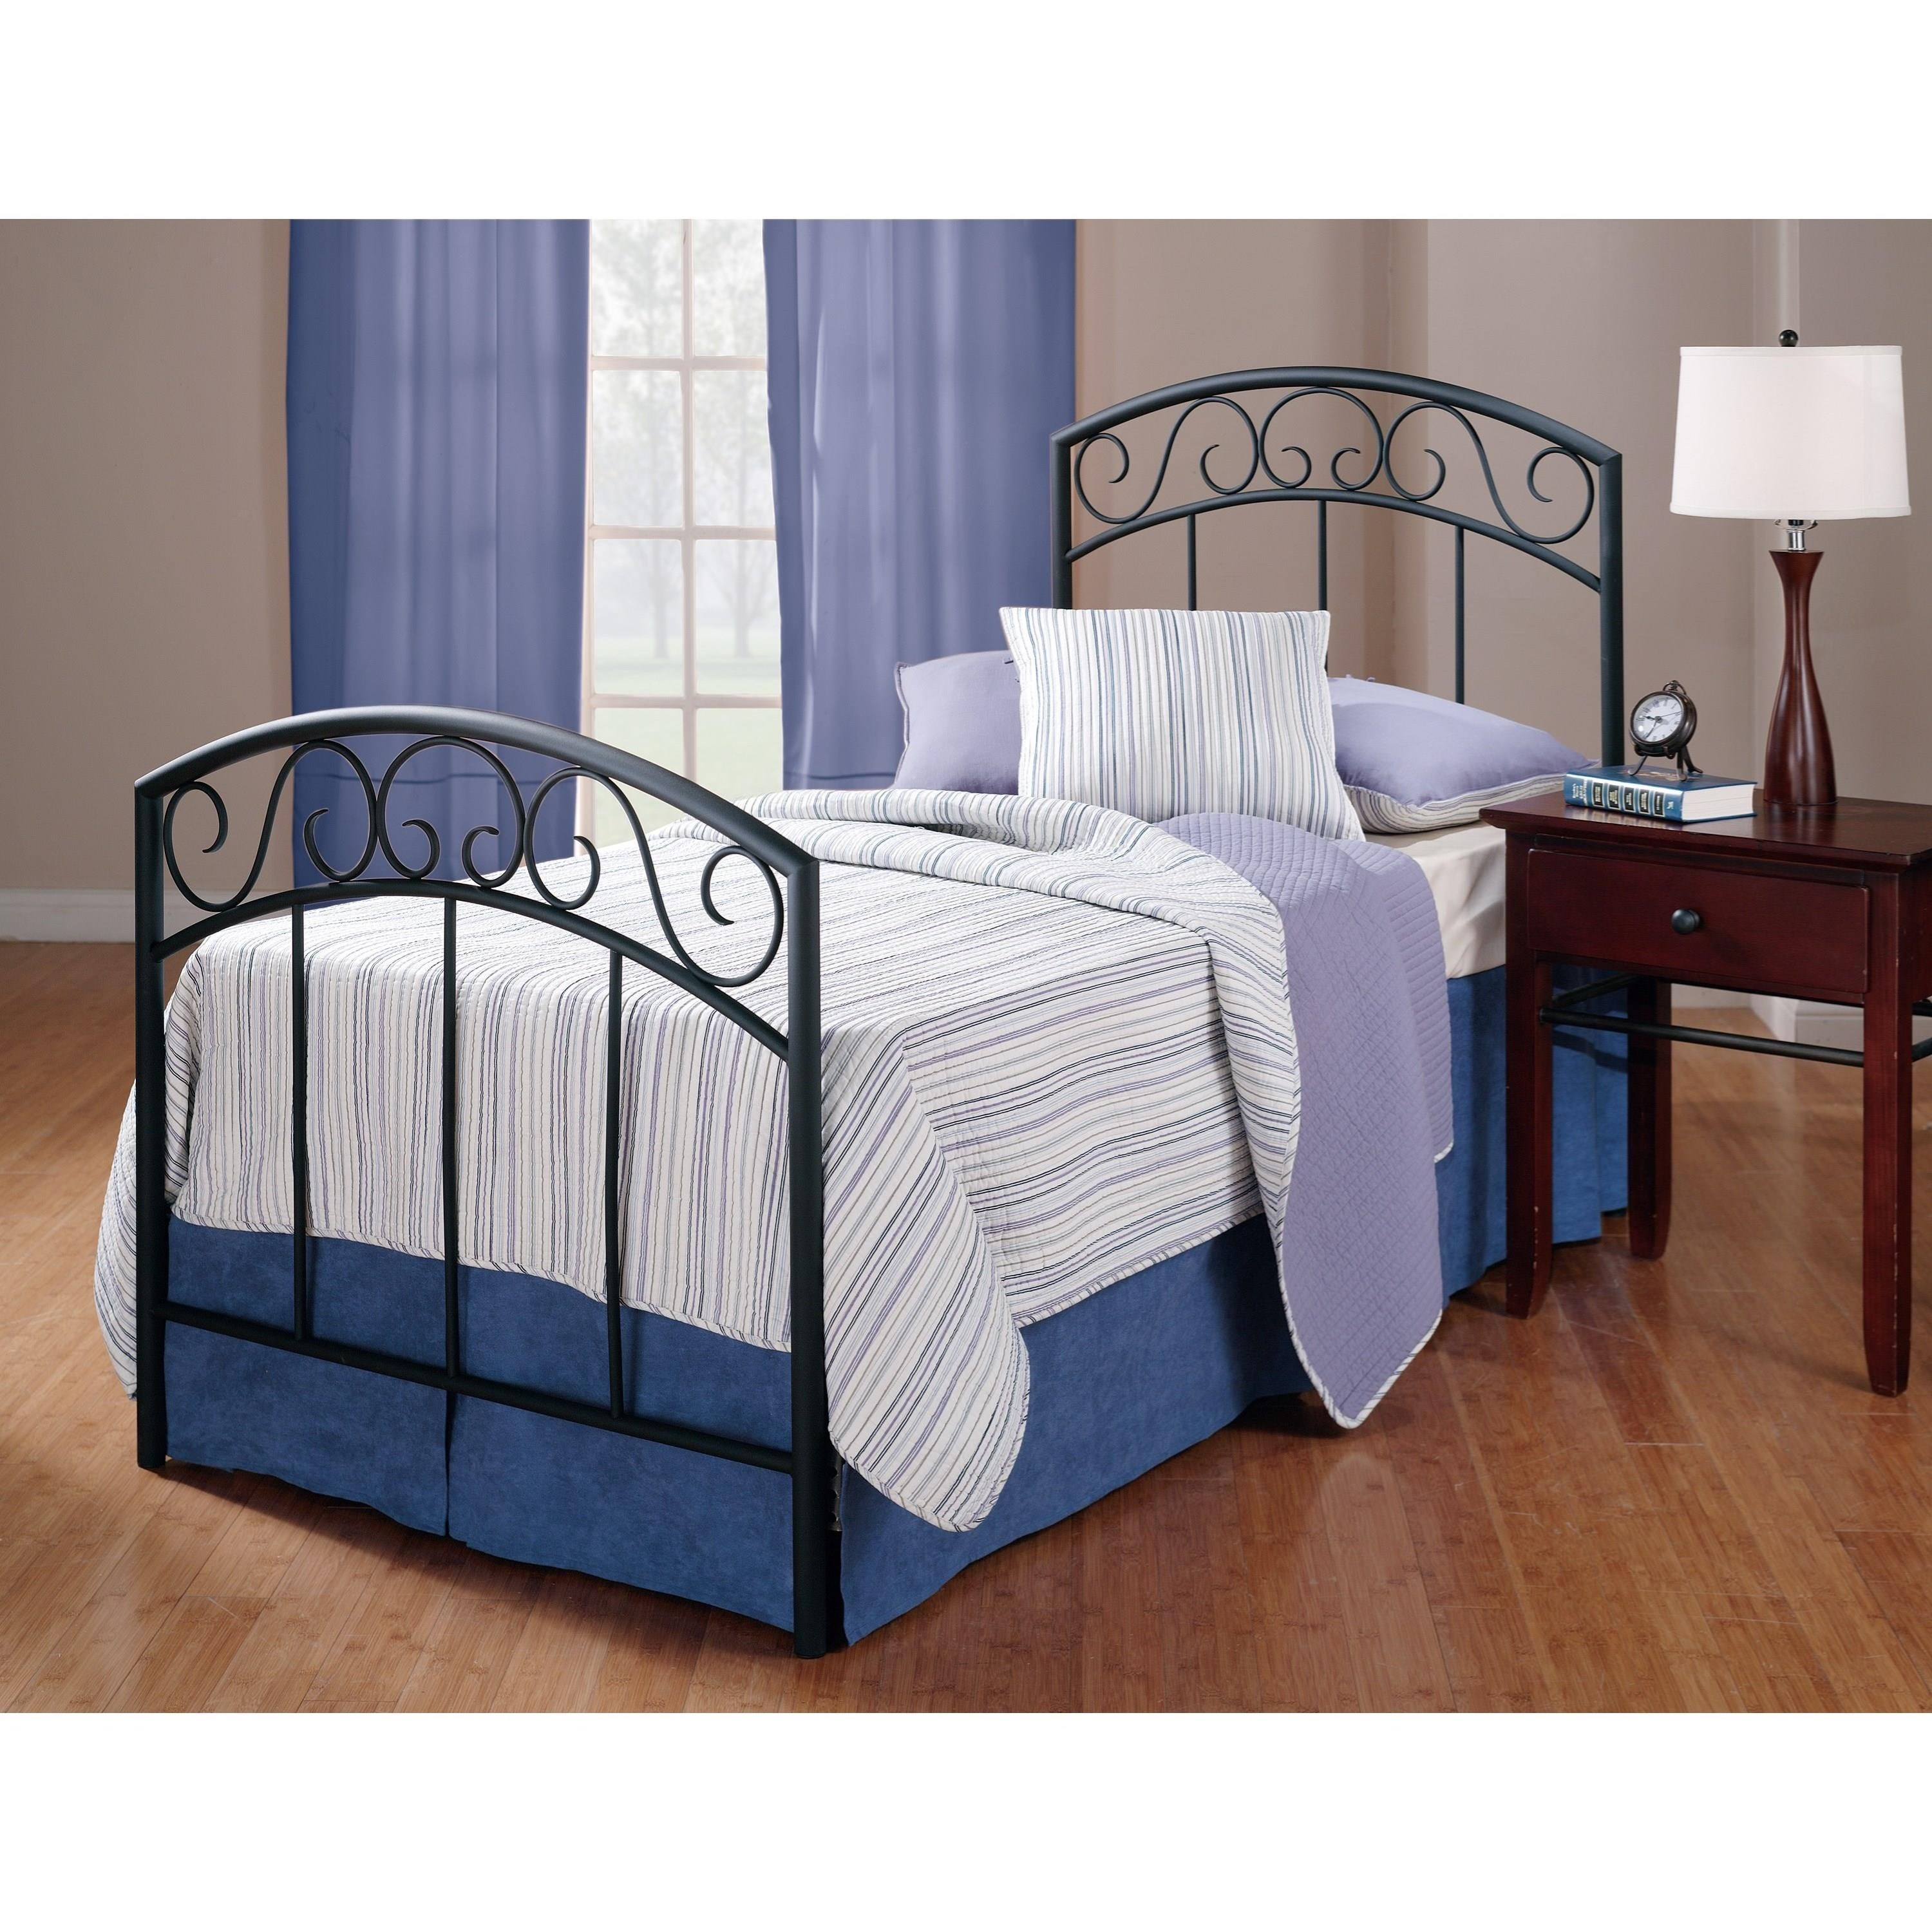 Twin Wendell Bed Set - Rails not included